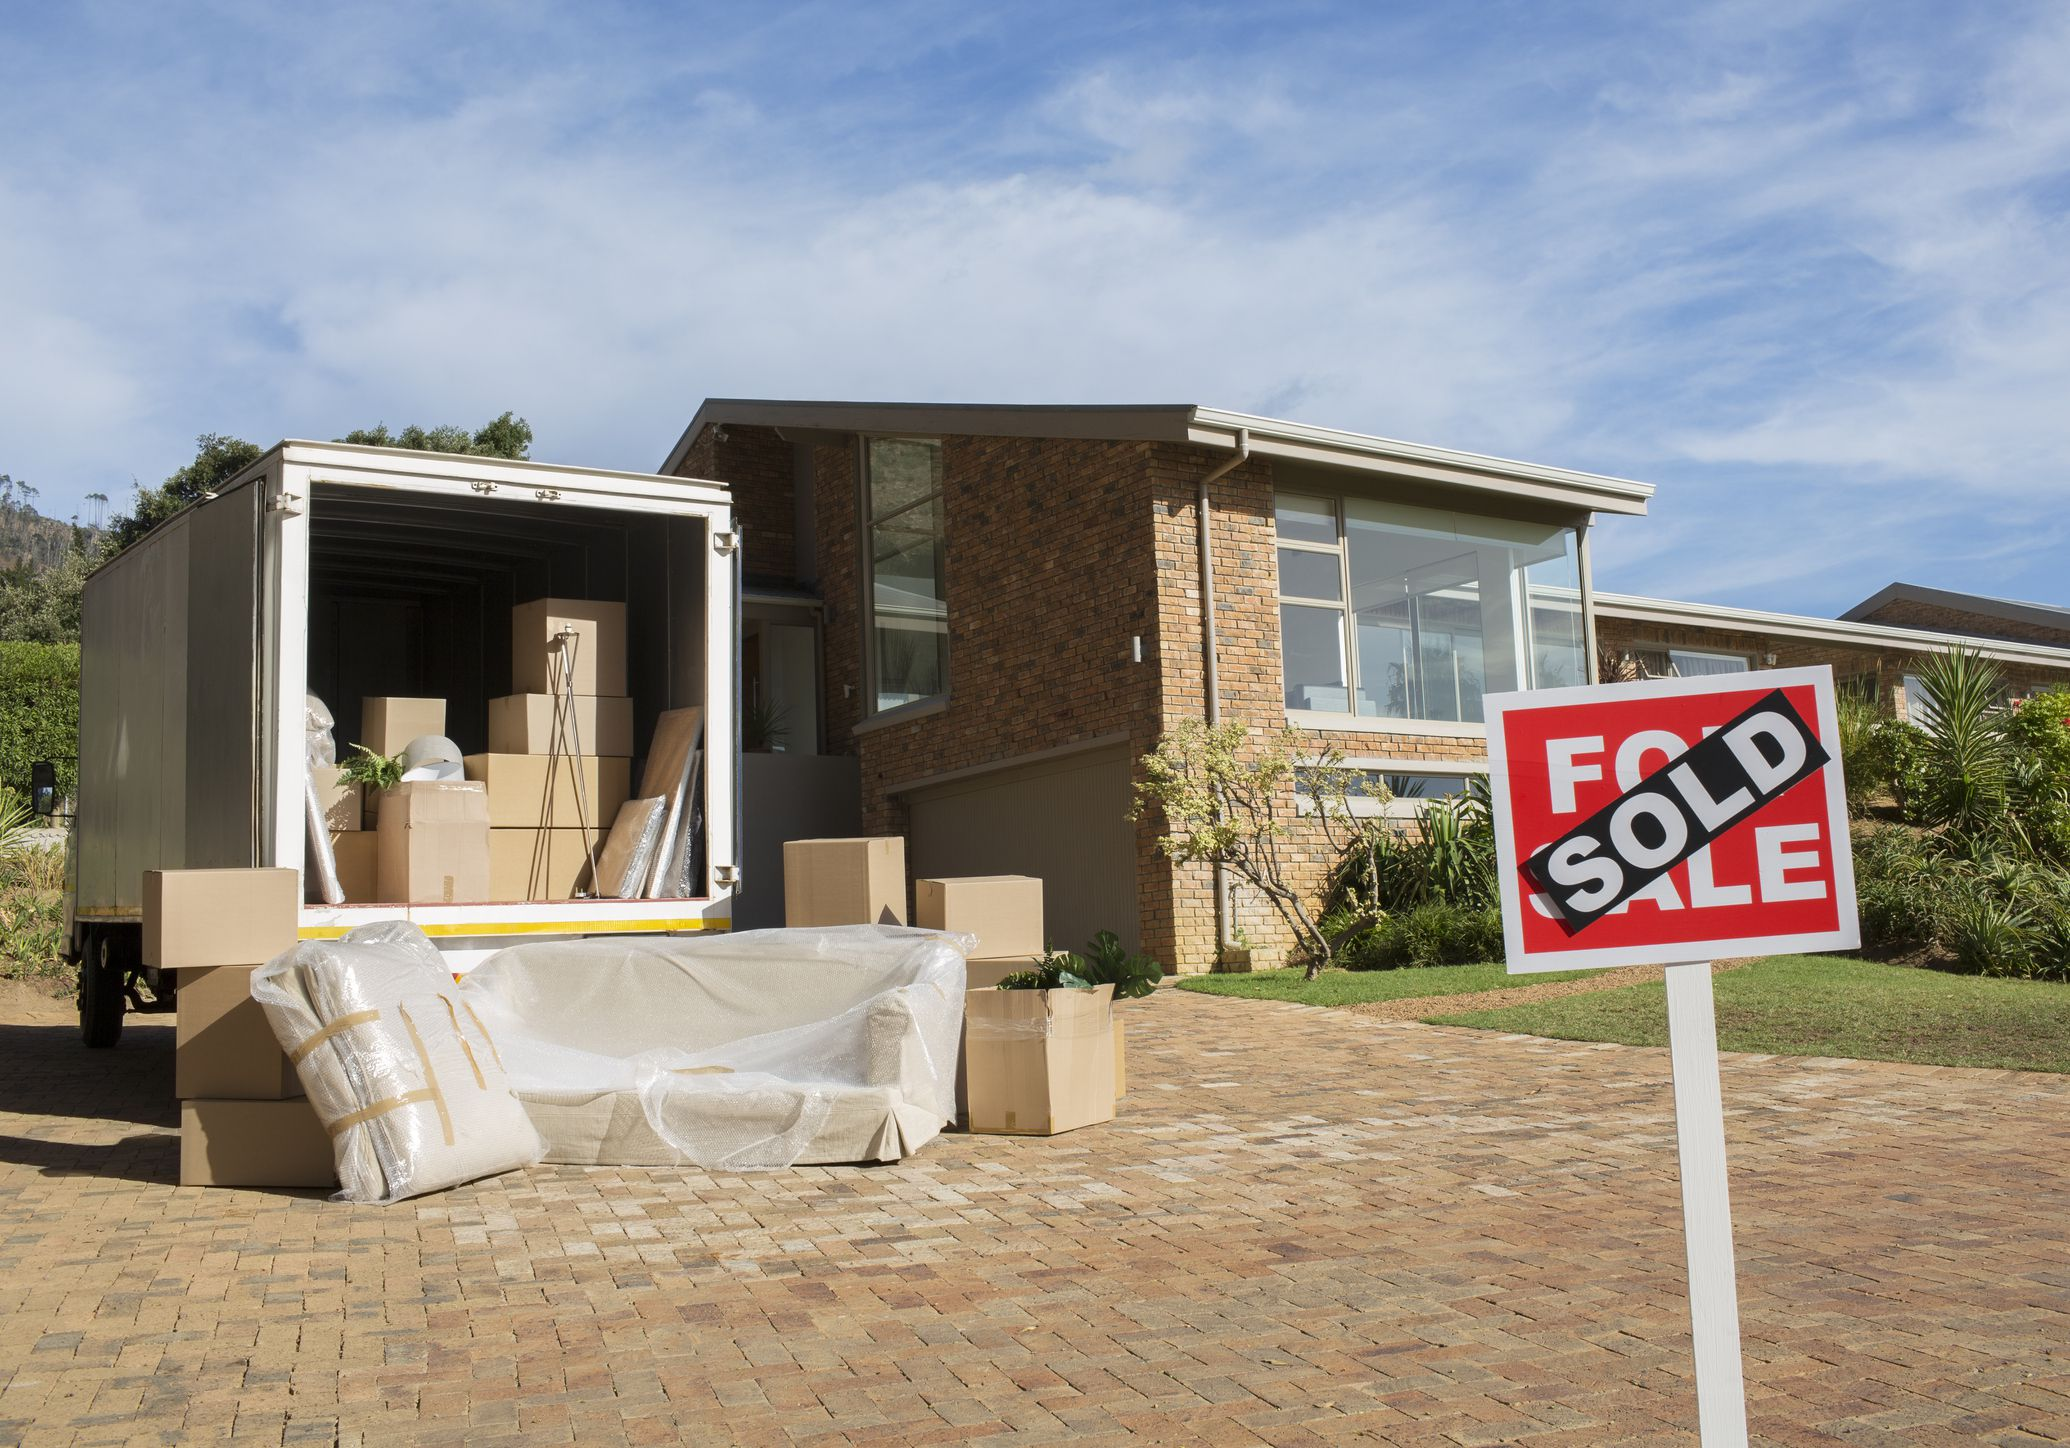 Doing A Strategic Short Sale Without A Hardship